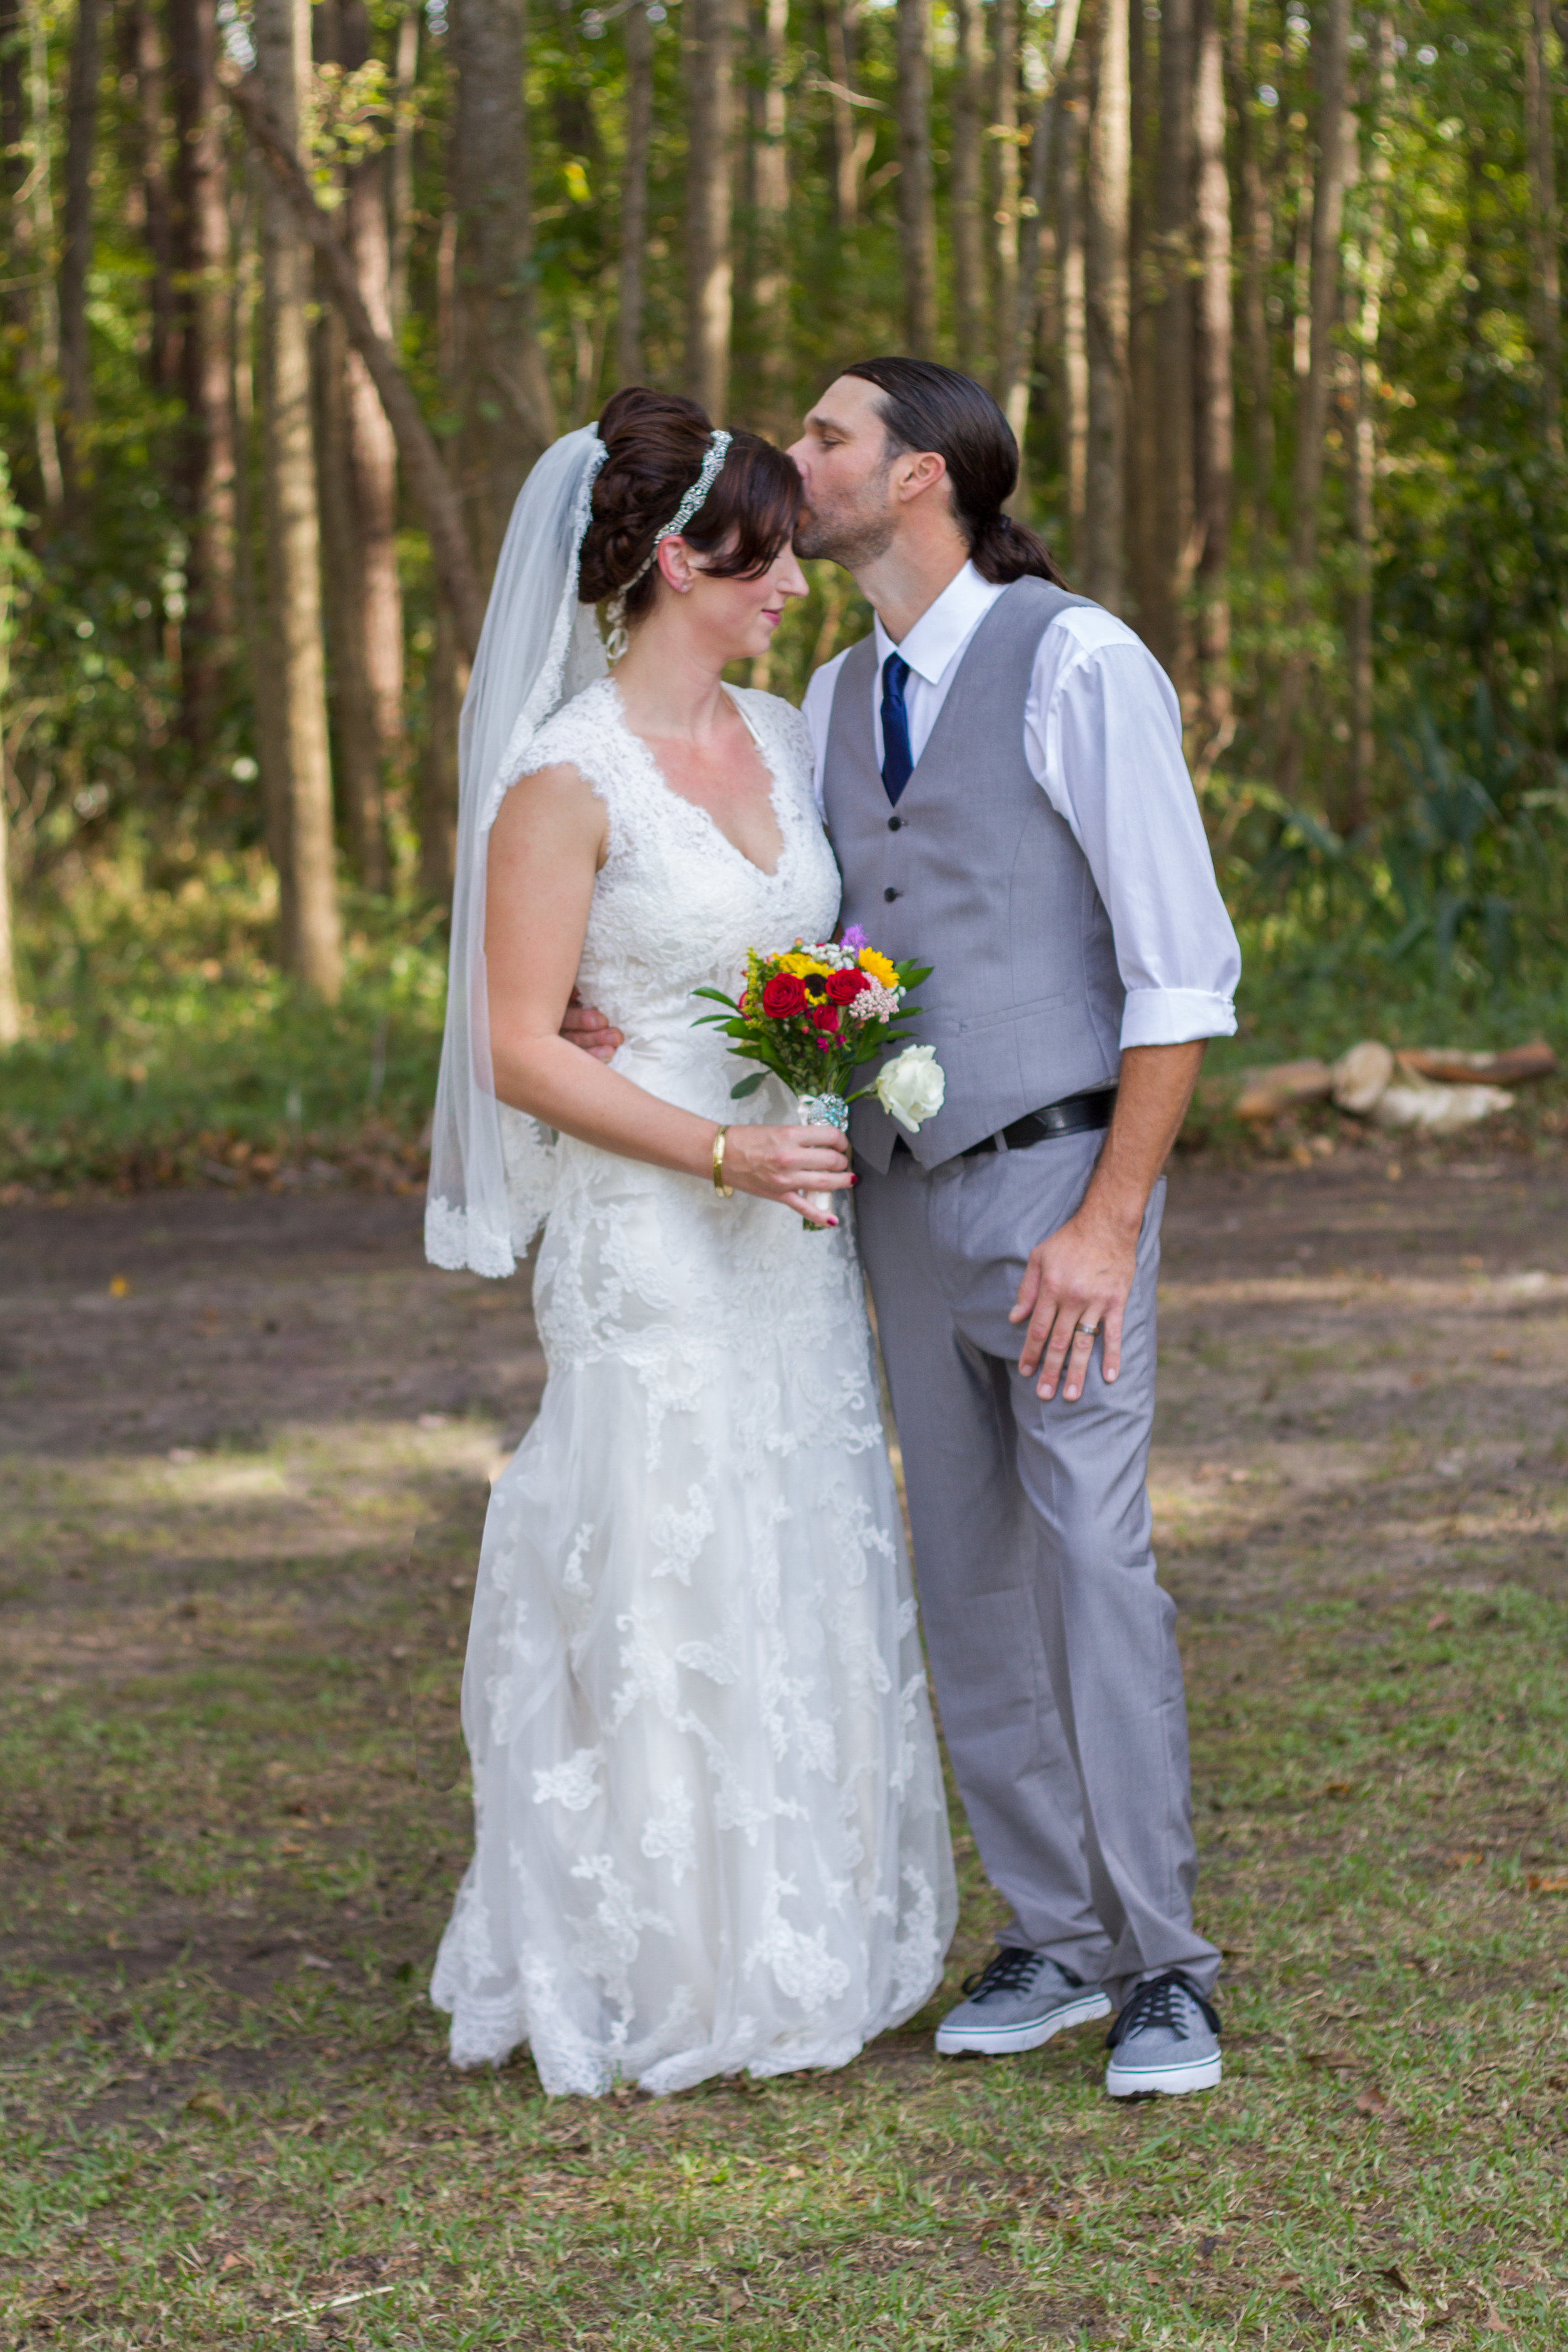 Jacqueline and Shawn Wedding (271 of 597).jpg